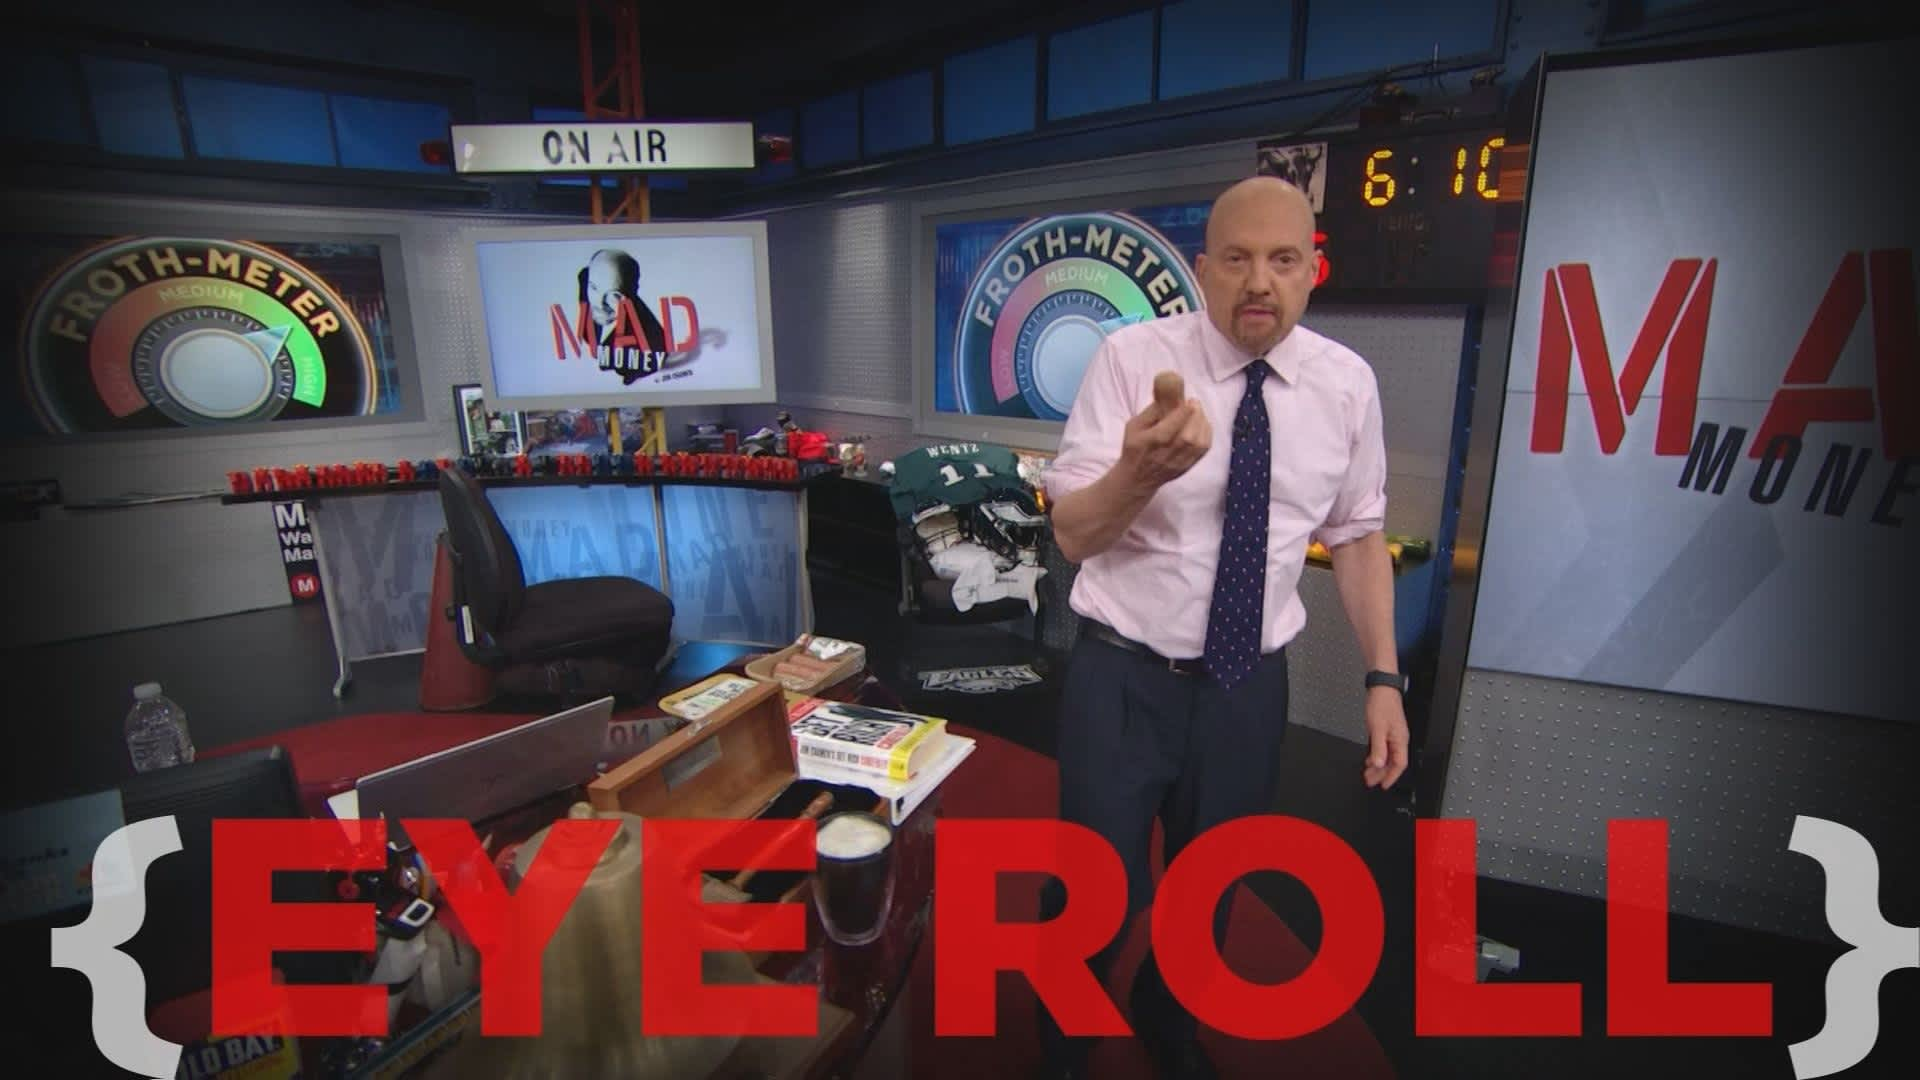 Cramer Remix: The June Swoon talk is useless